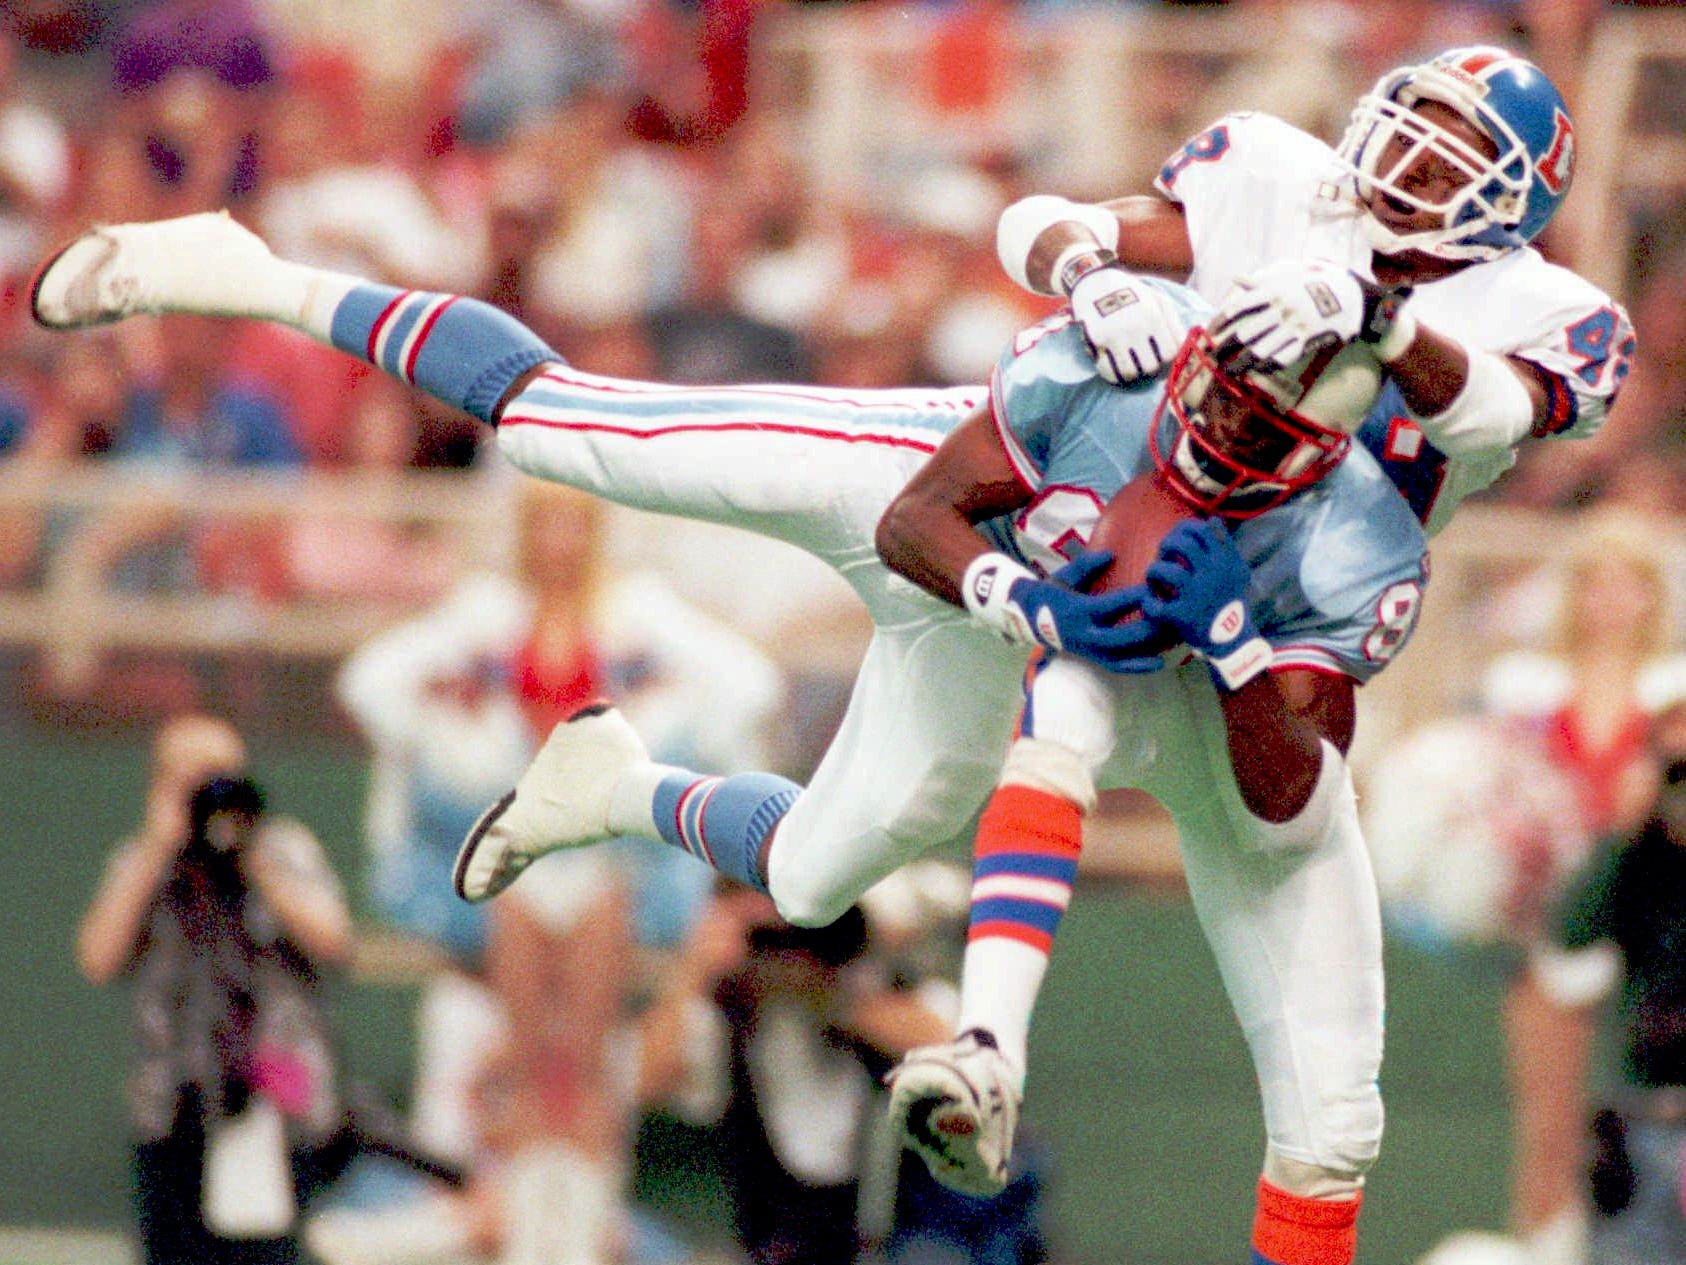 Houston Oilers receiver Chris Sanders hauls in a 36-yard first quarter touchdown pass from Chris Chandler, beating Broncos defensive back Lionel Washington Nov. 26, 1995 in Houston. The Oilers won 42-33.